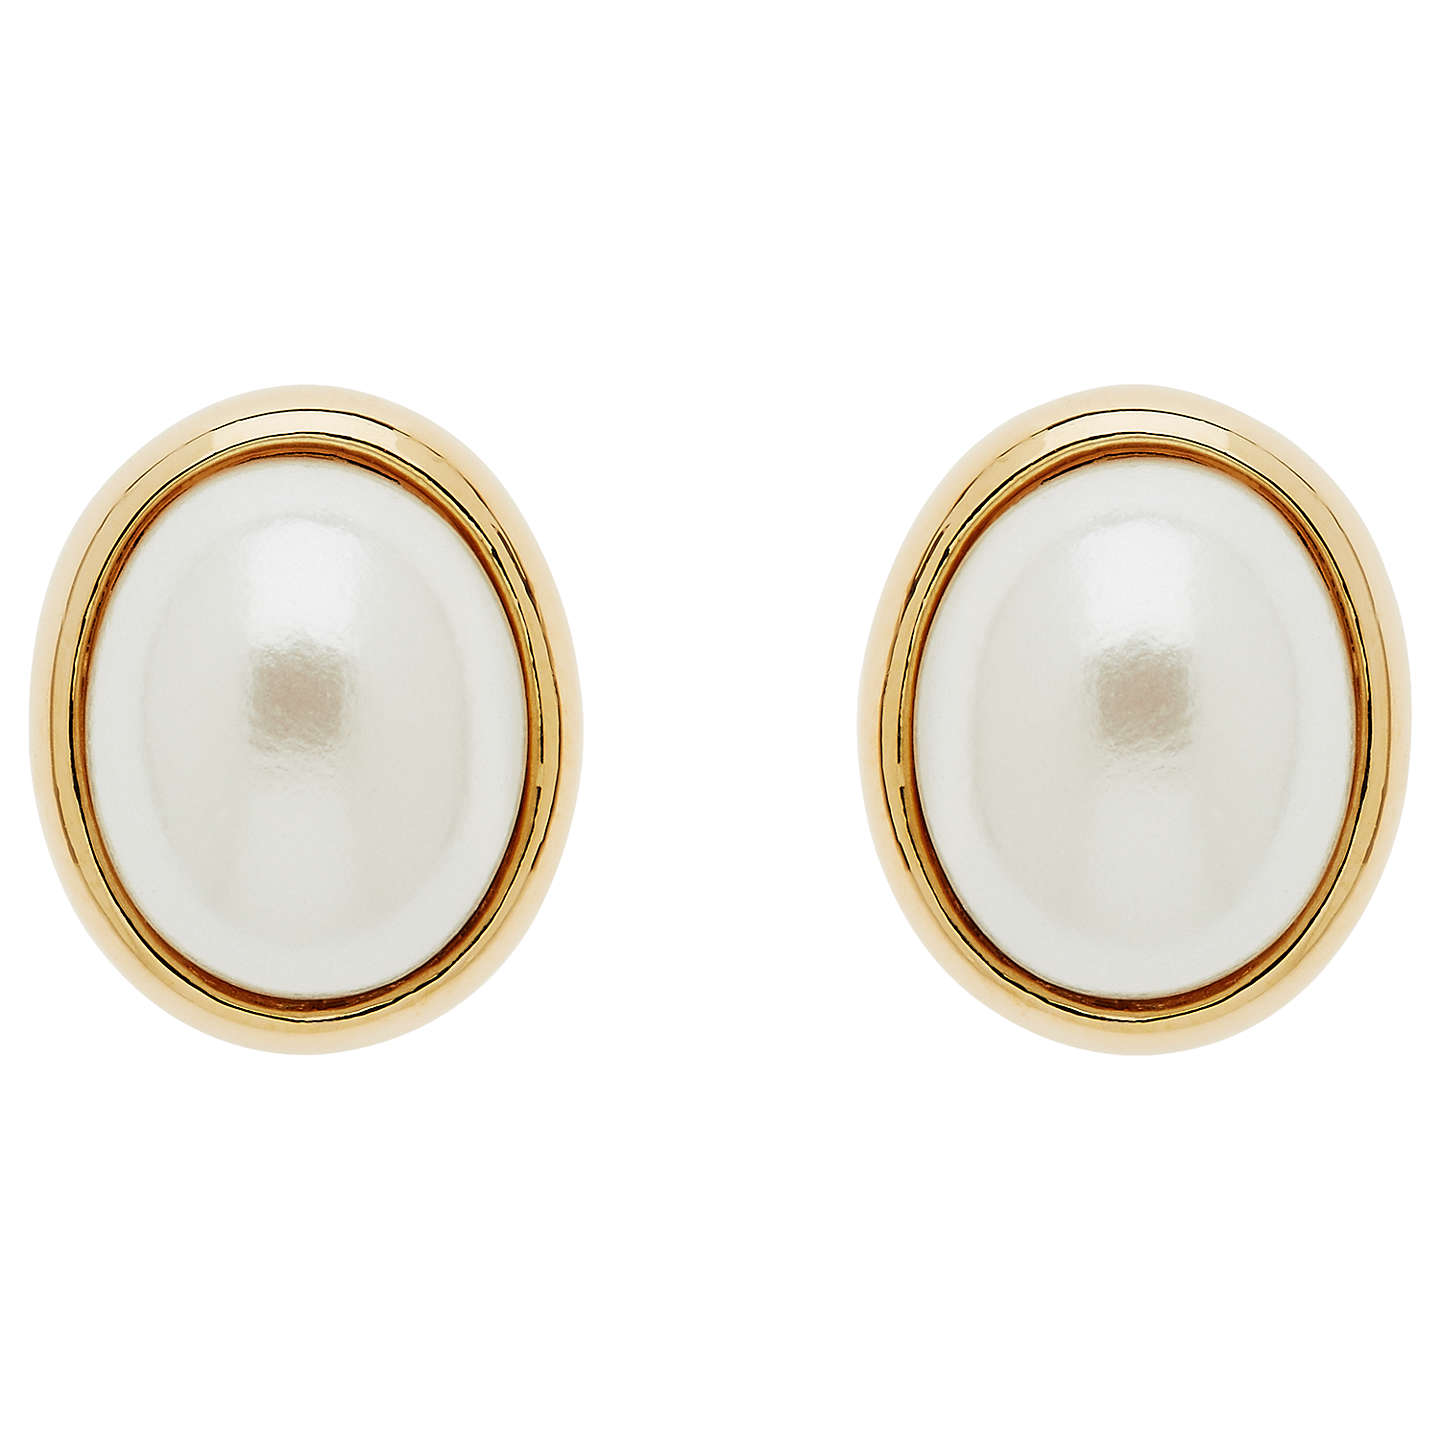 tara south collections sea golden copy earrings and stud pearl earring products diamond pearls all